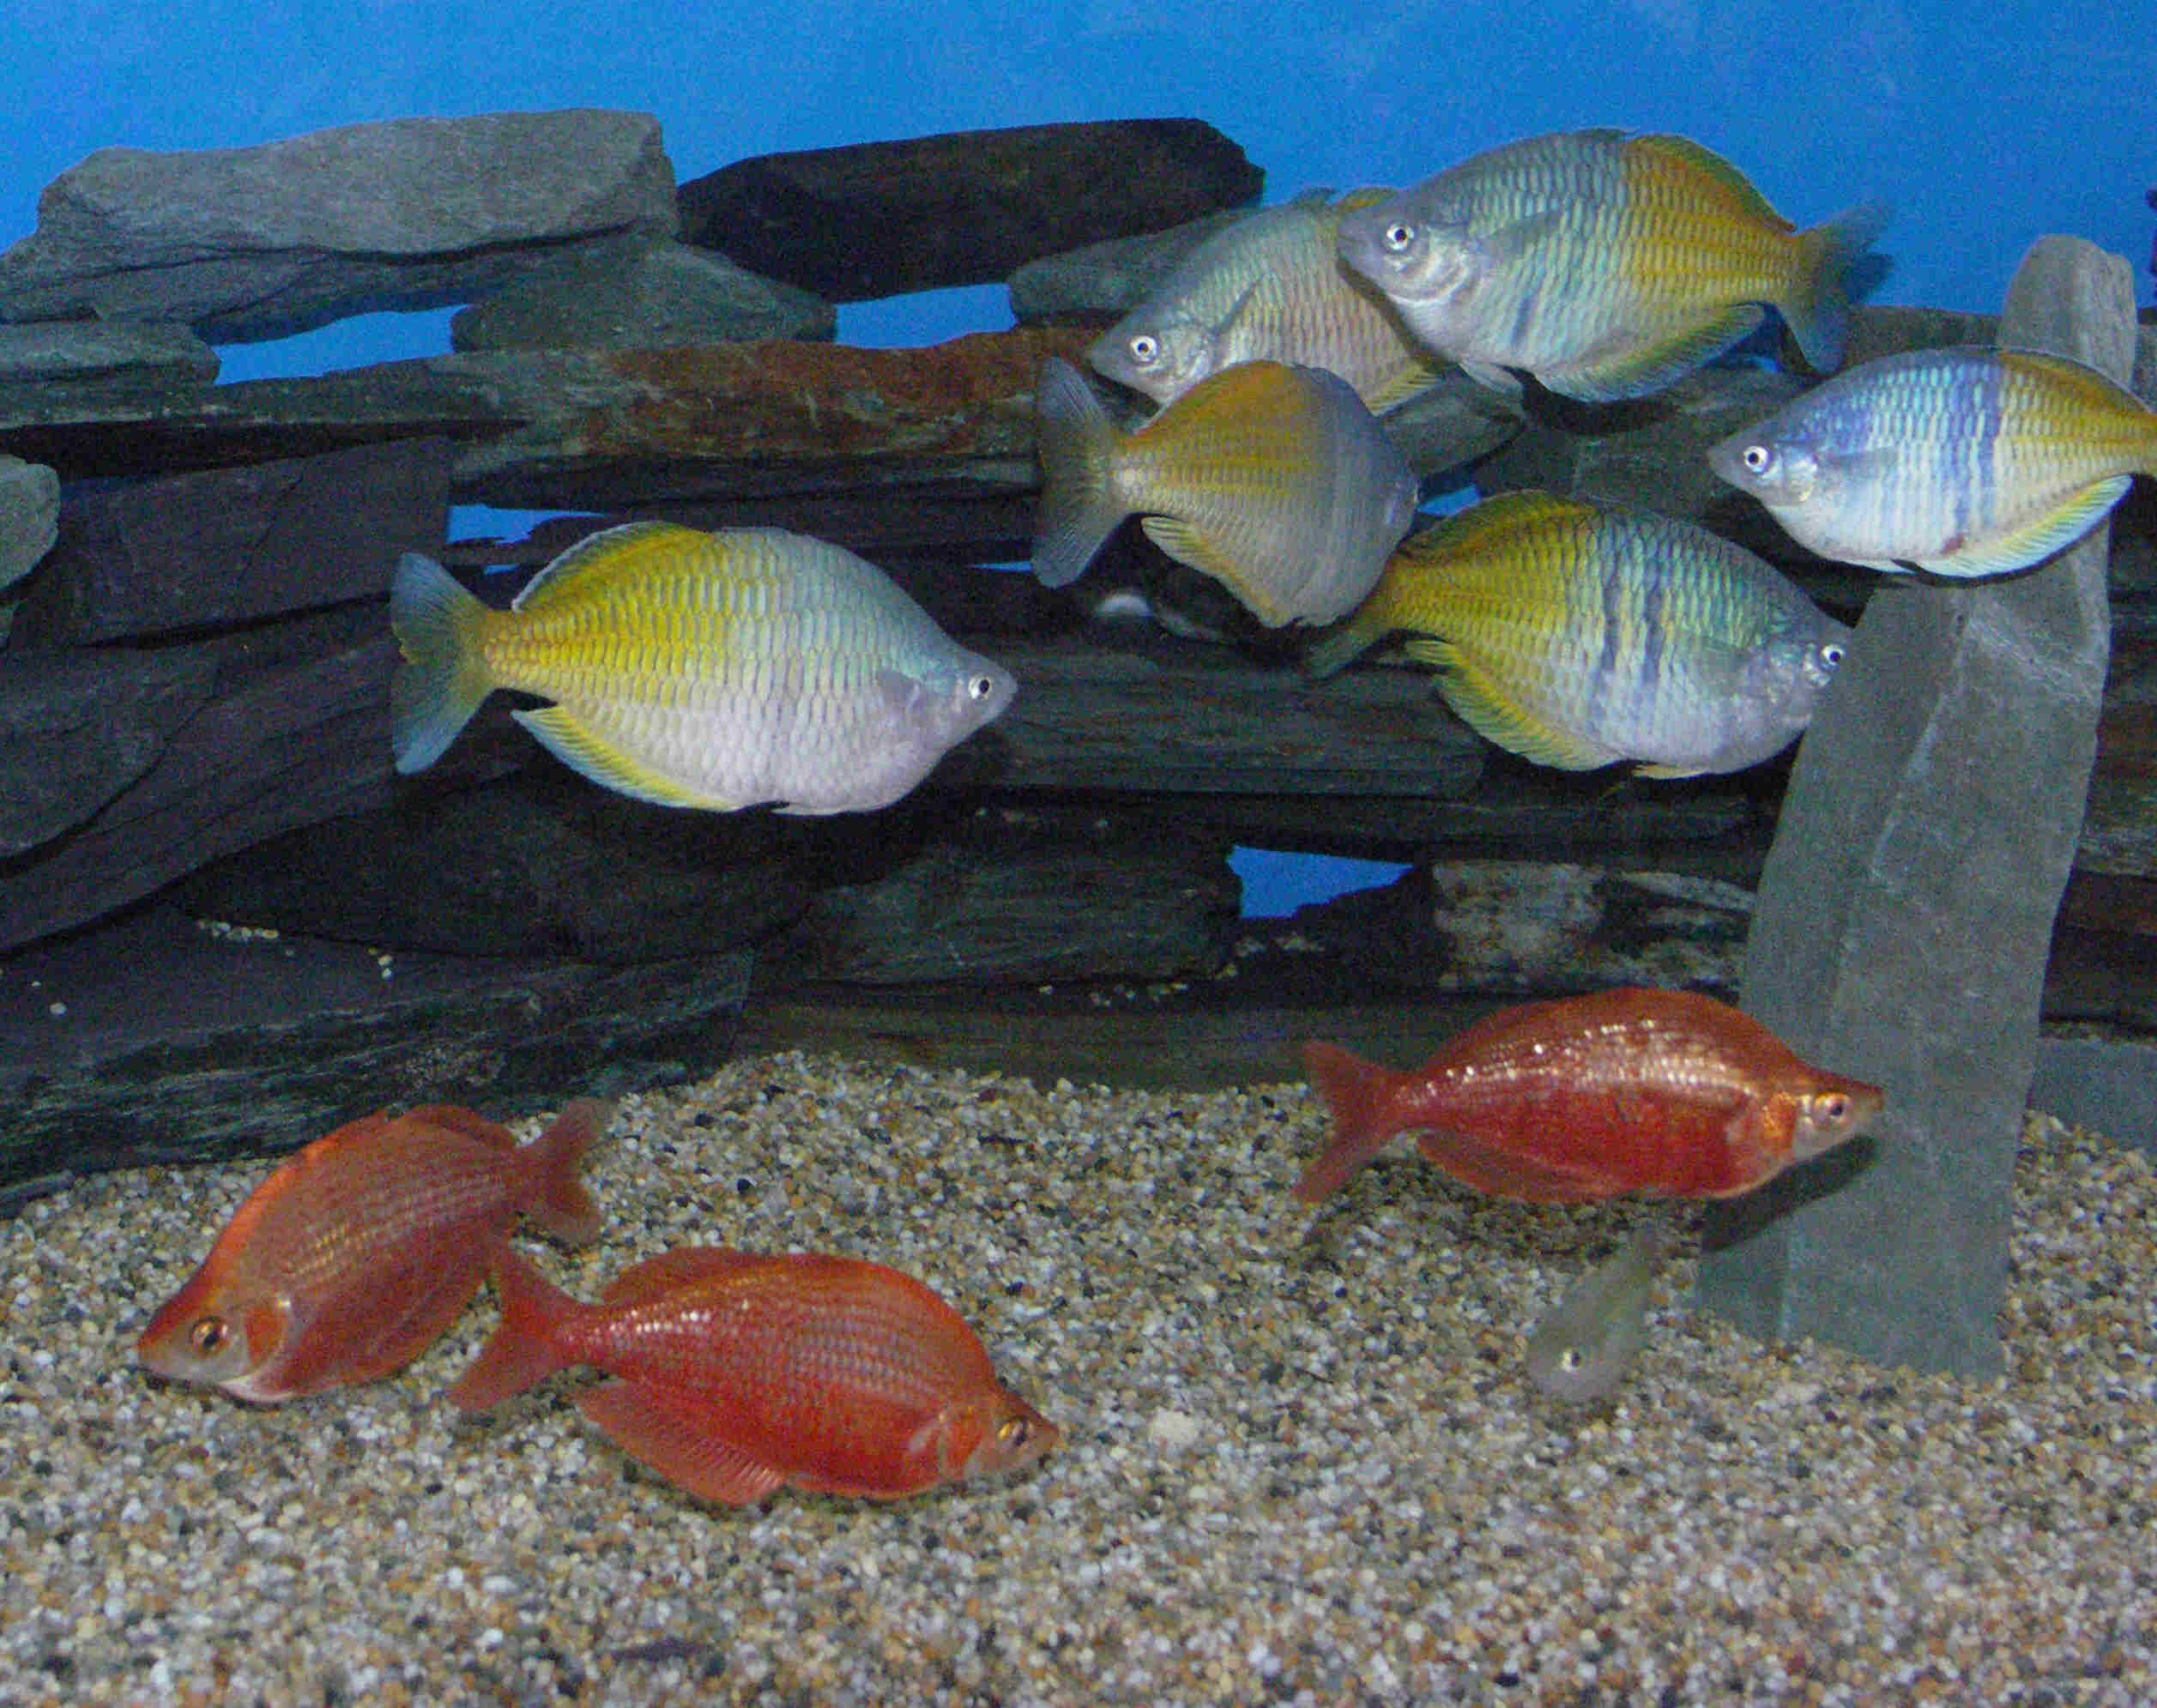 Google images for Brackish water fish